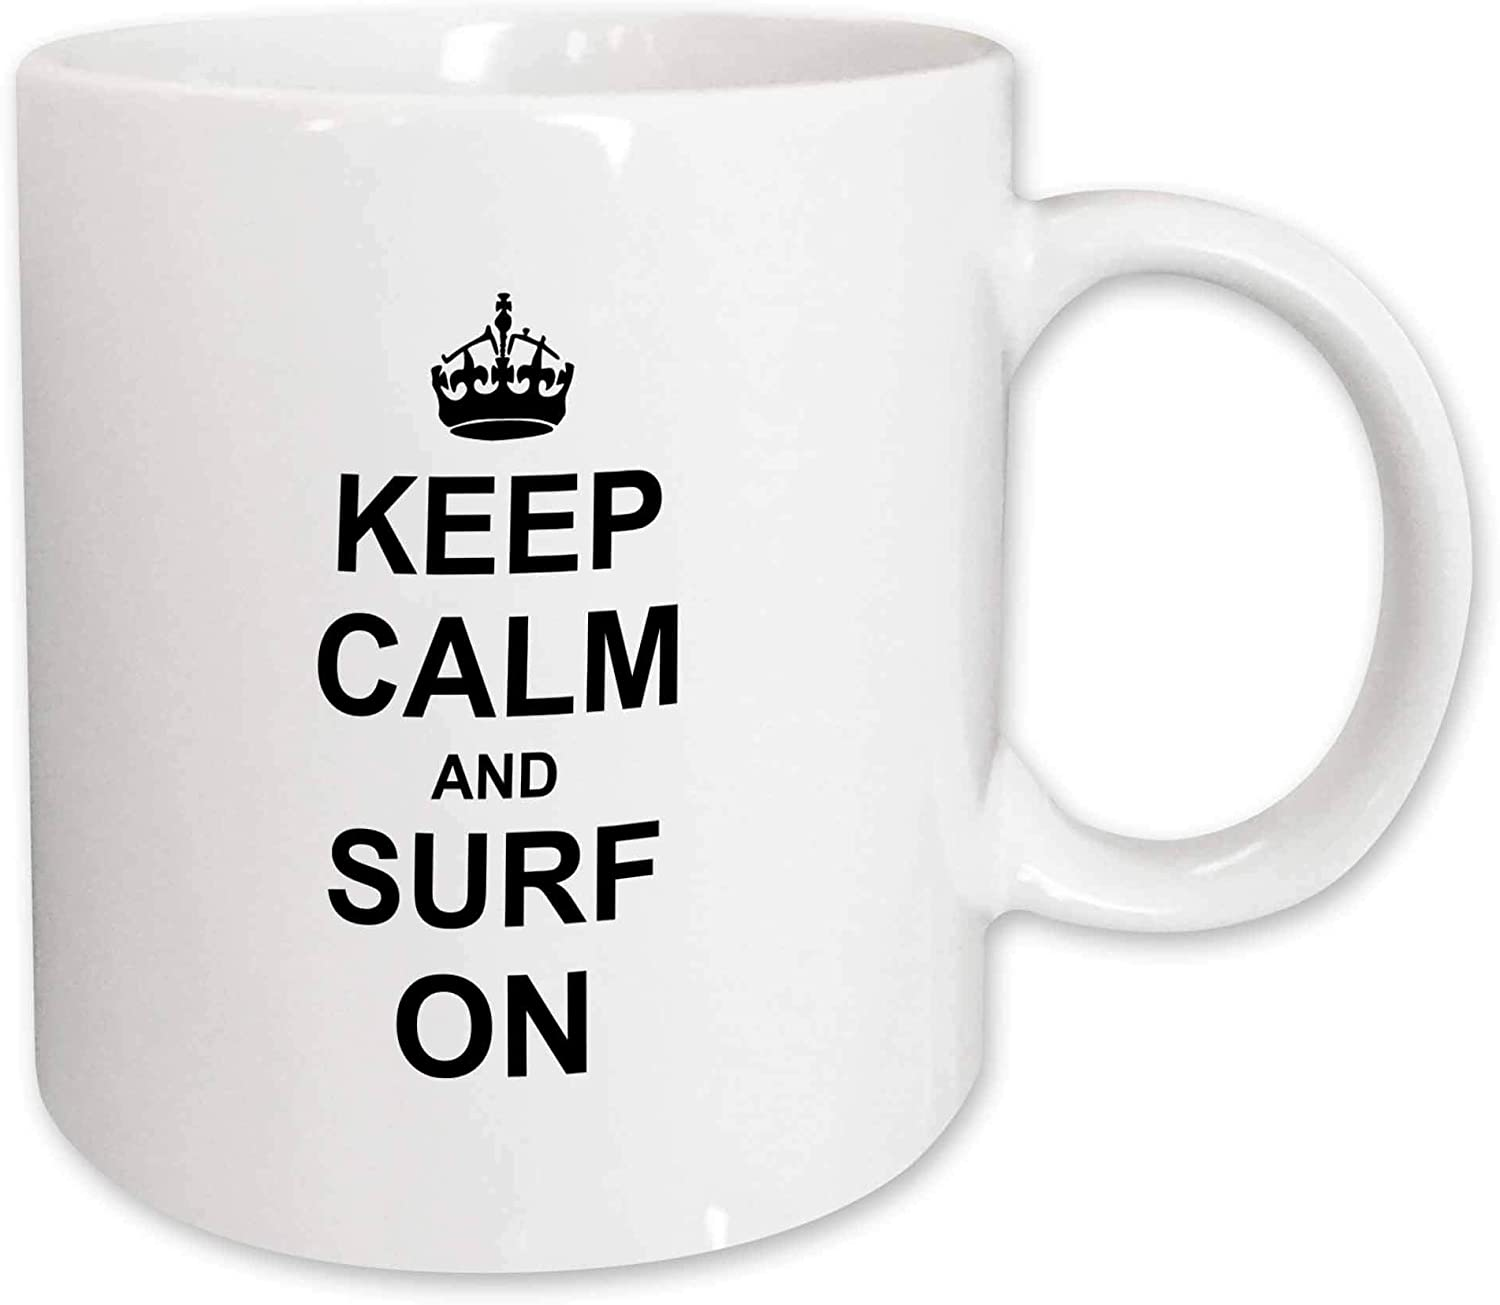 CARRY ON SURFING KEEP CALM AND CARRY ON Novelty Mug Gift Cup Retro Present